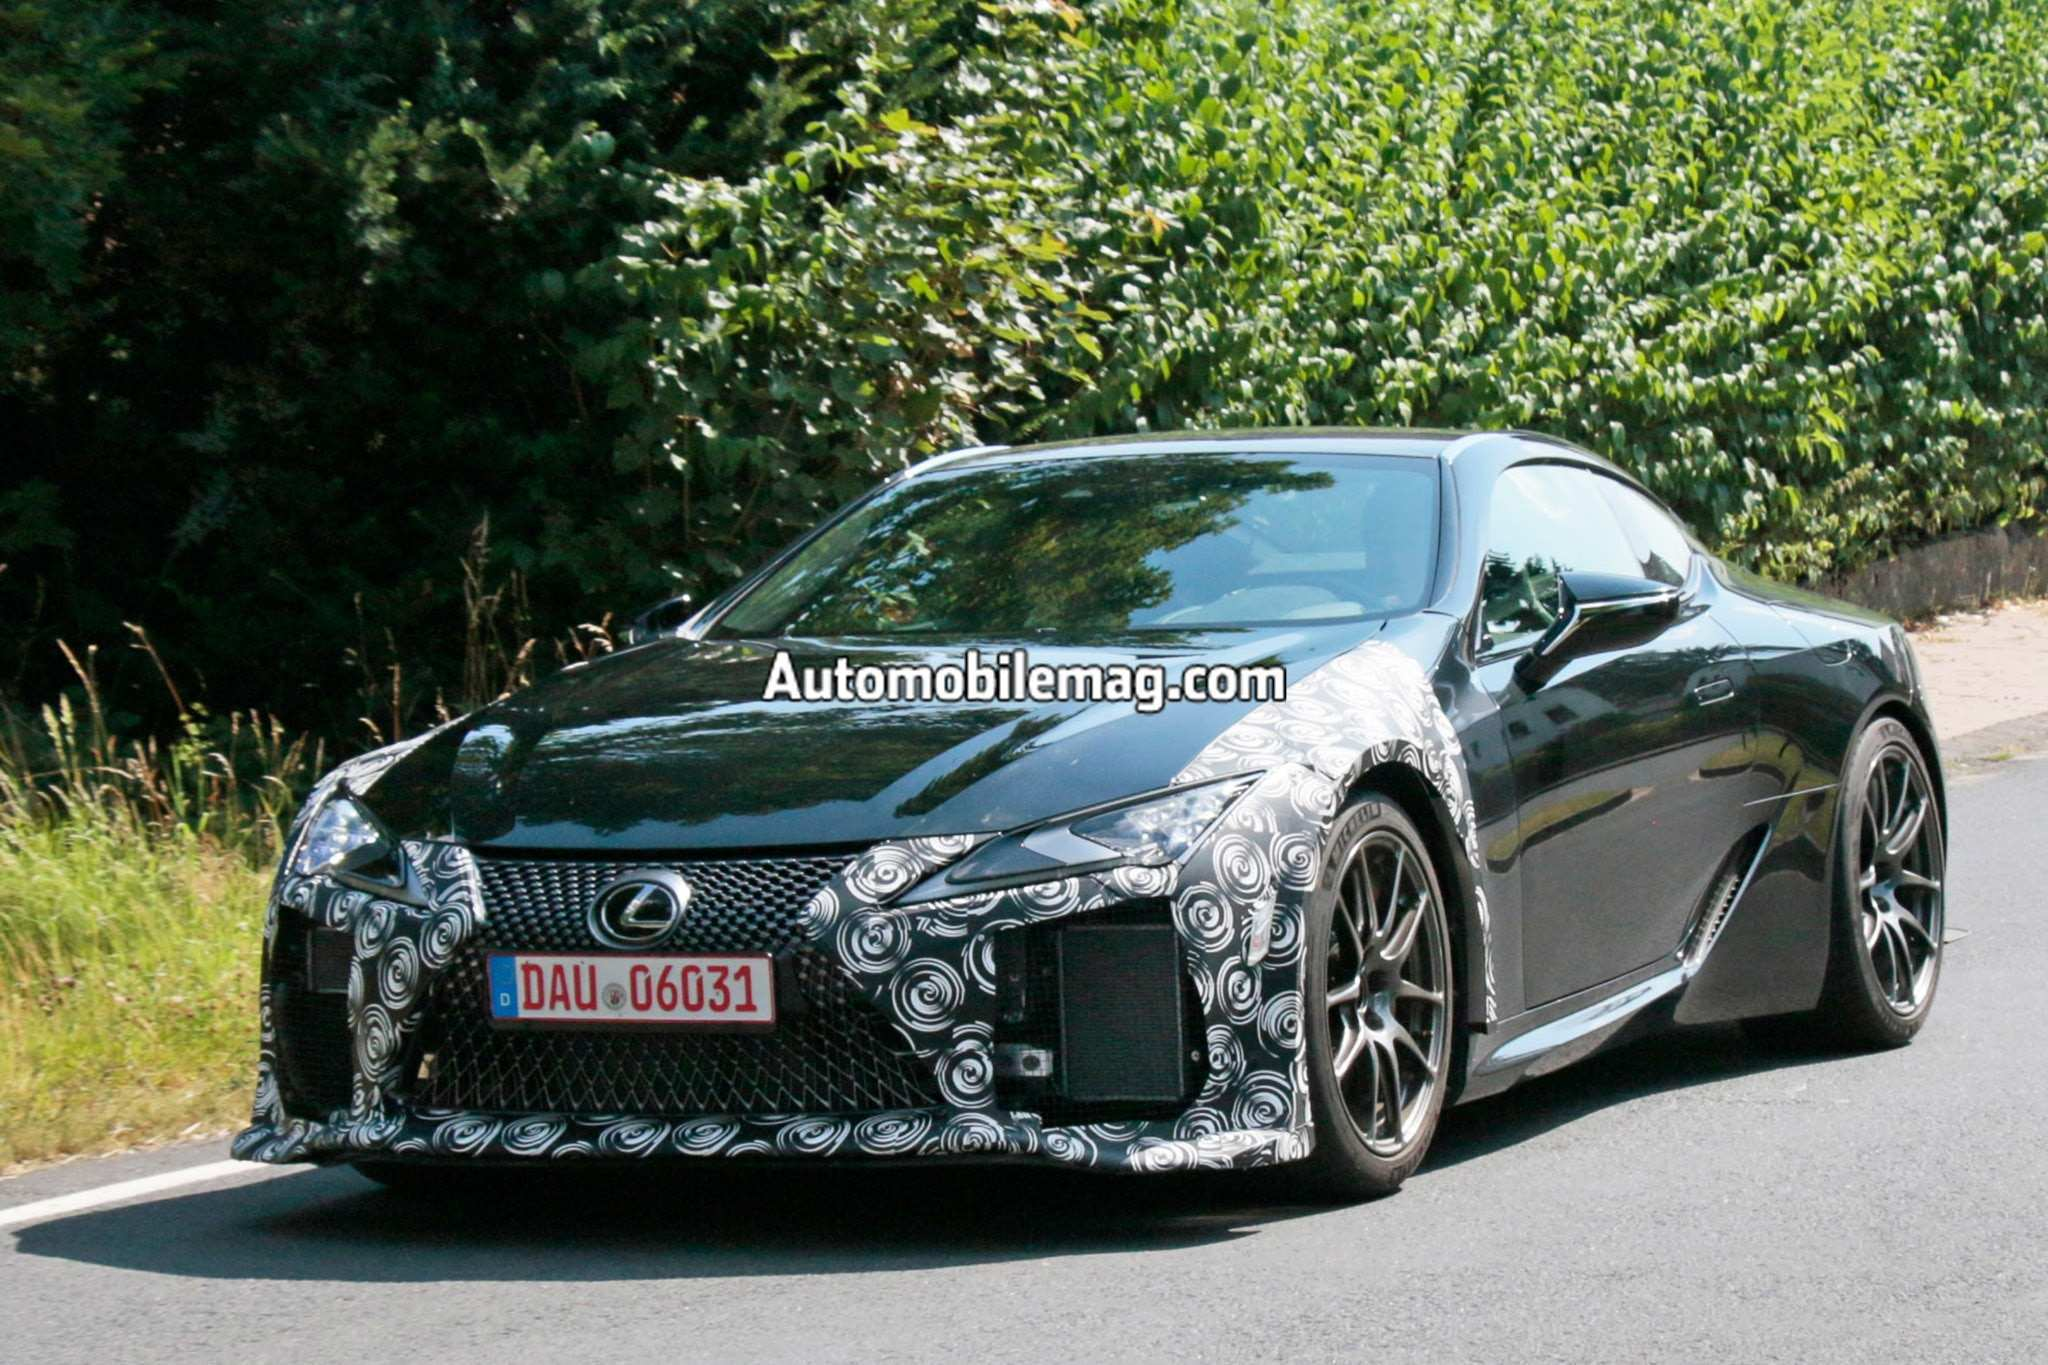 69 Great 2020 Lexus Lc F Pictures by 2020 Lexus Lc F